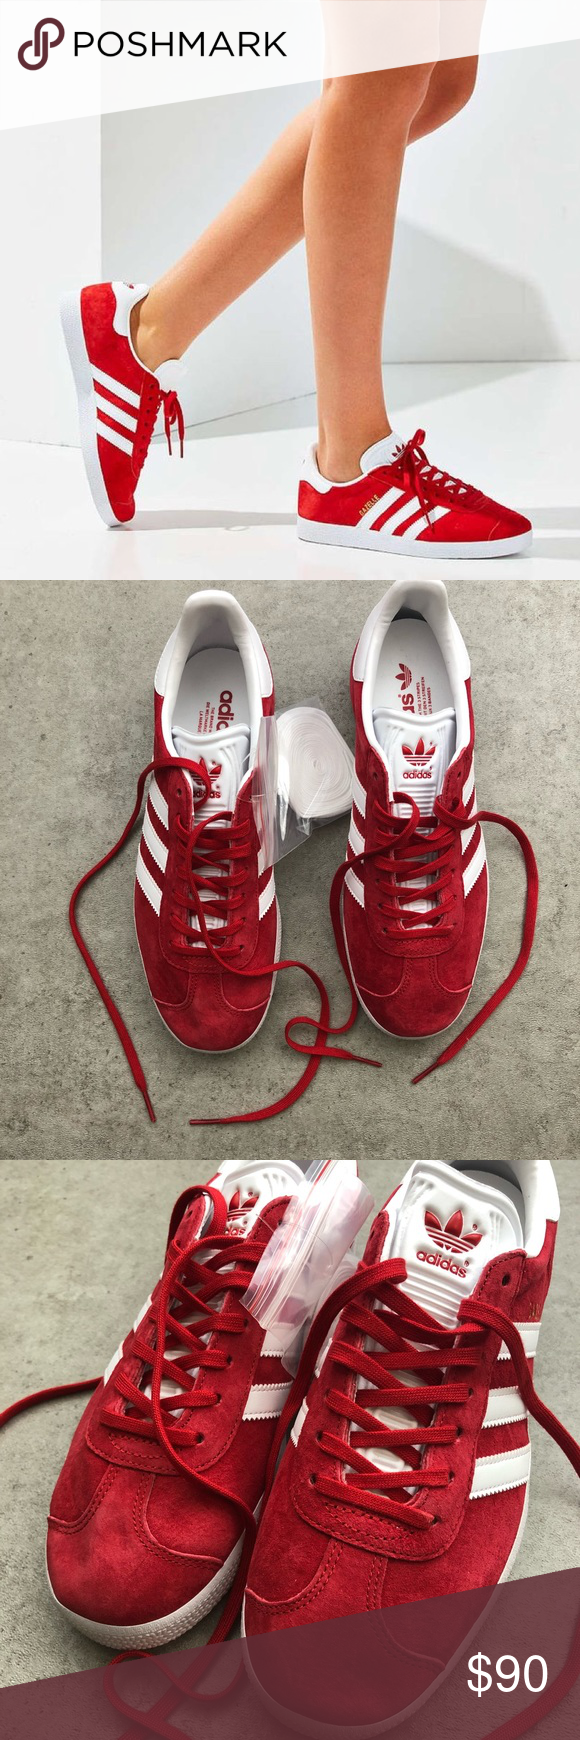 NWT Adidas Gazelle Red Suede Sneakers Brand new with tags